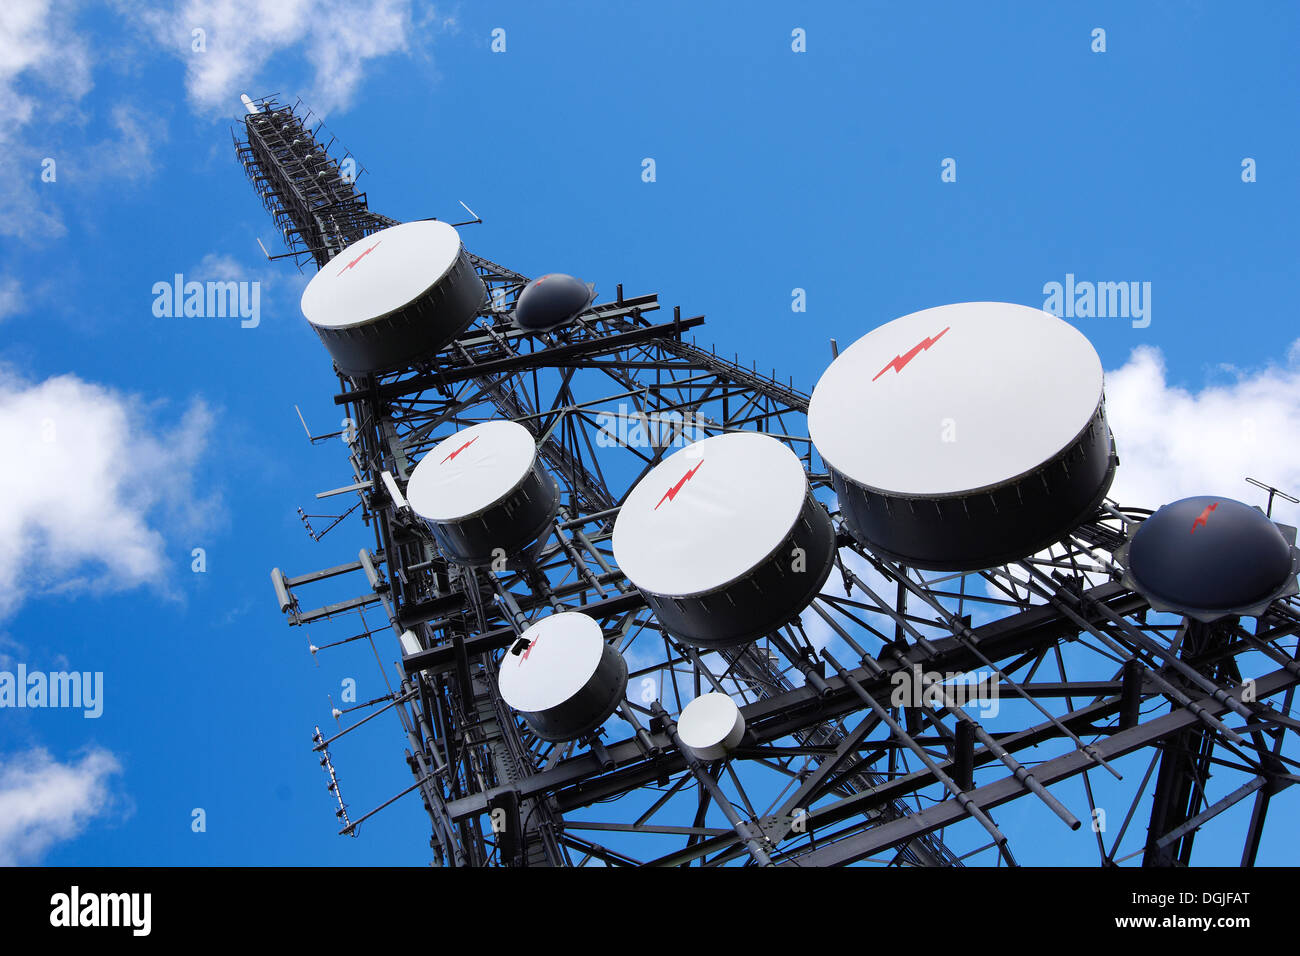 Communications tower. - Stock Image